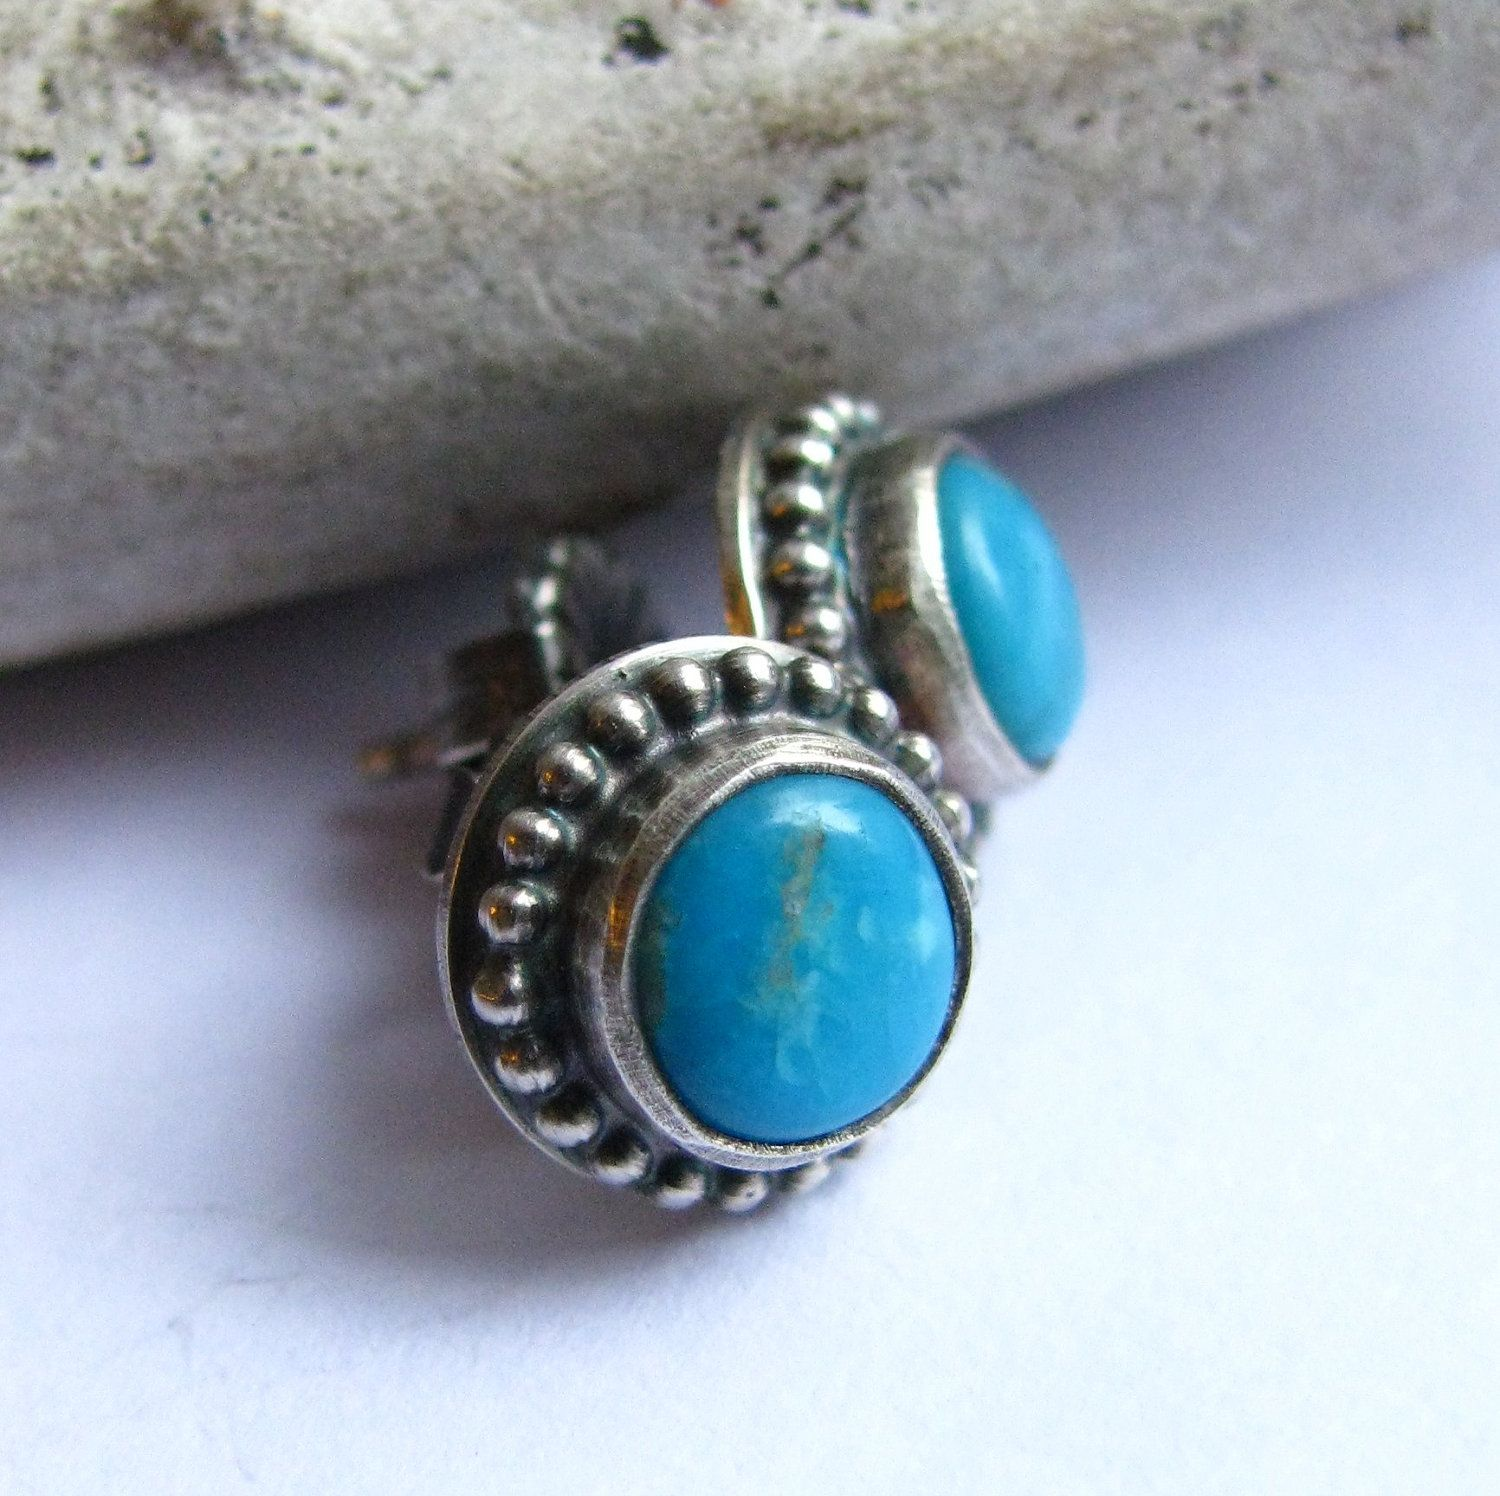 6mm Kingman Turquoise Earrings Stud Sterling Silver And Post Gemstone Jewelry